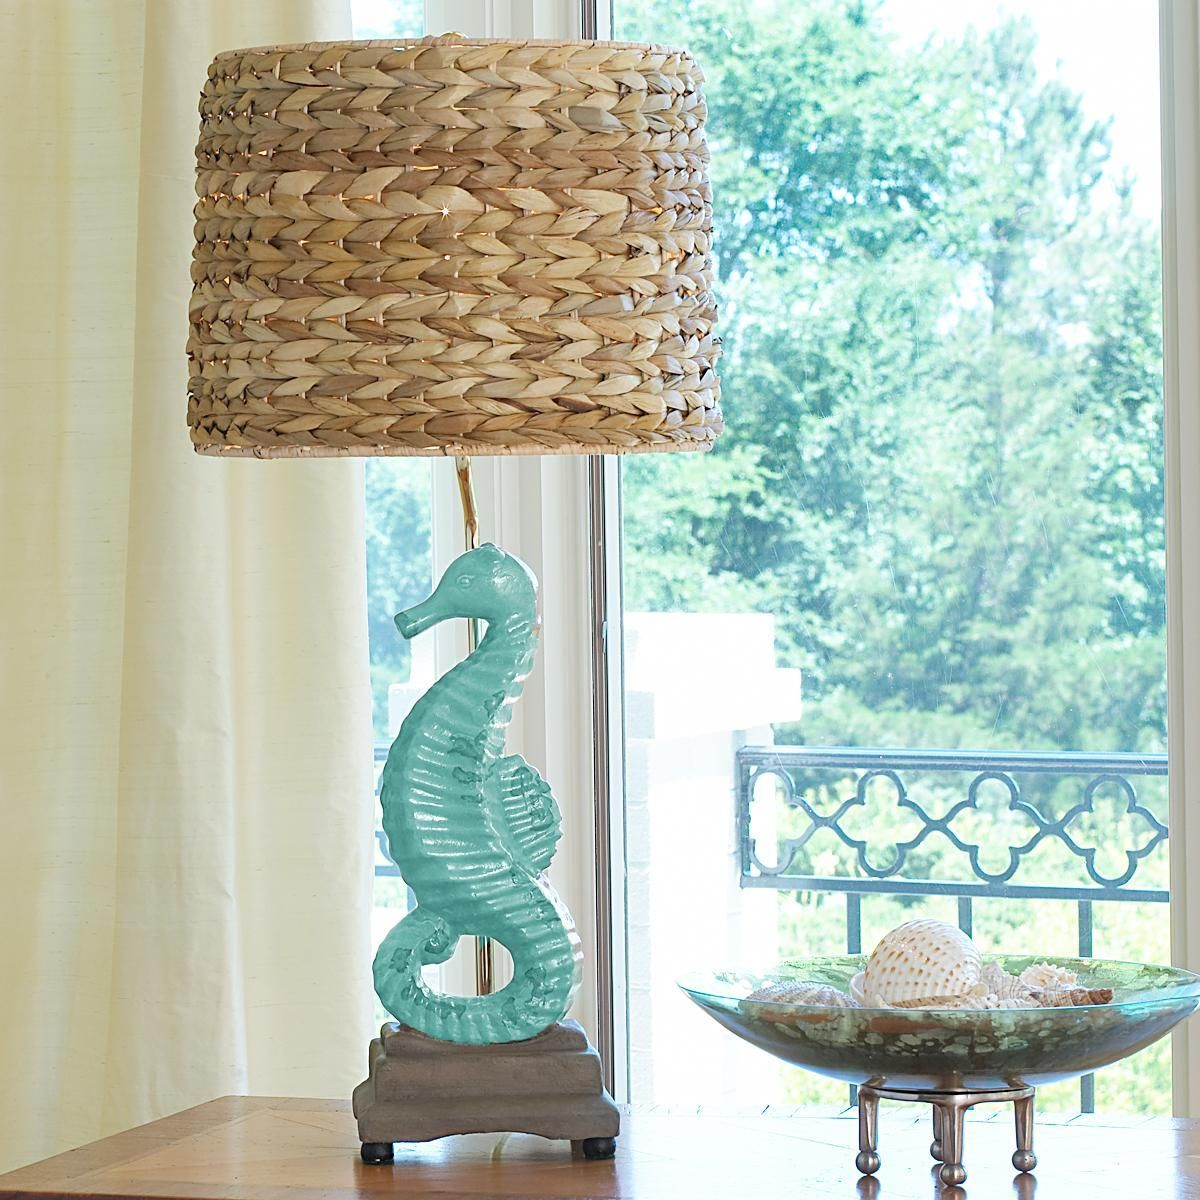 Glass mermaid sitting on conch shell accent lamp eclectic table lamps - A Possibility For A Table Lamp In The Hawaiian Themed Bedroom